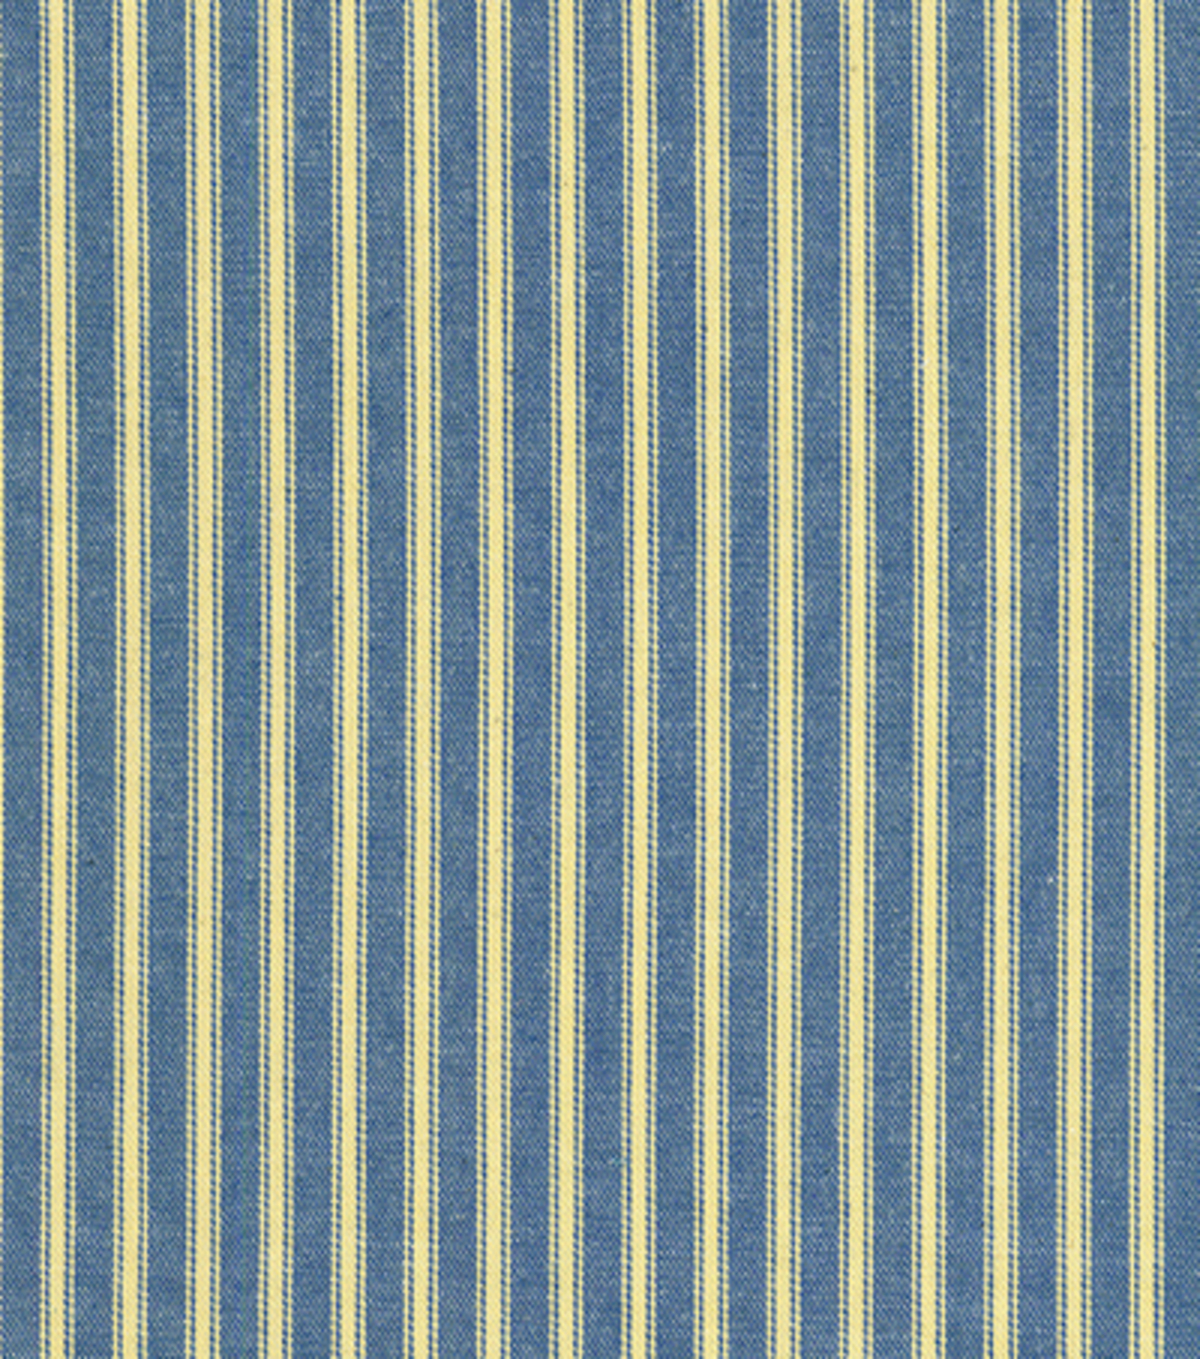 Upholstery Fabric-Covington New Woven Ticking